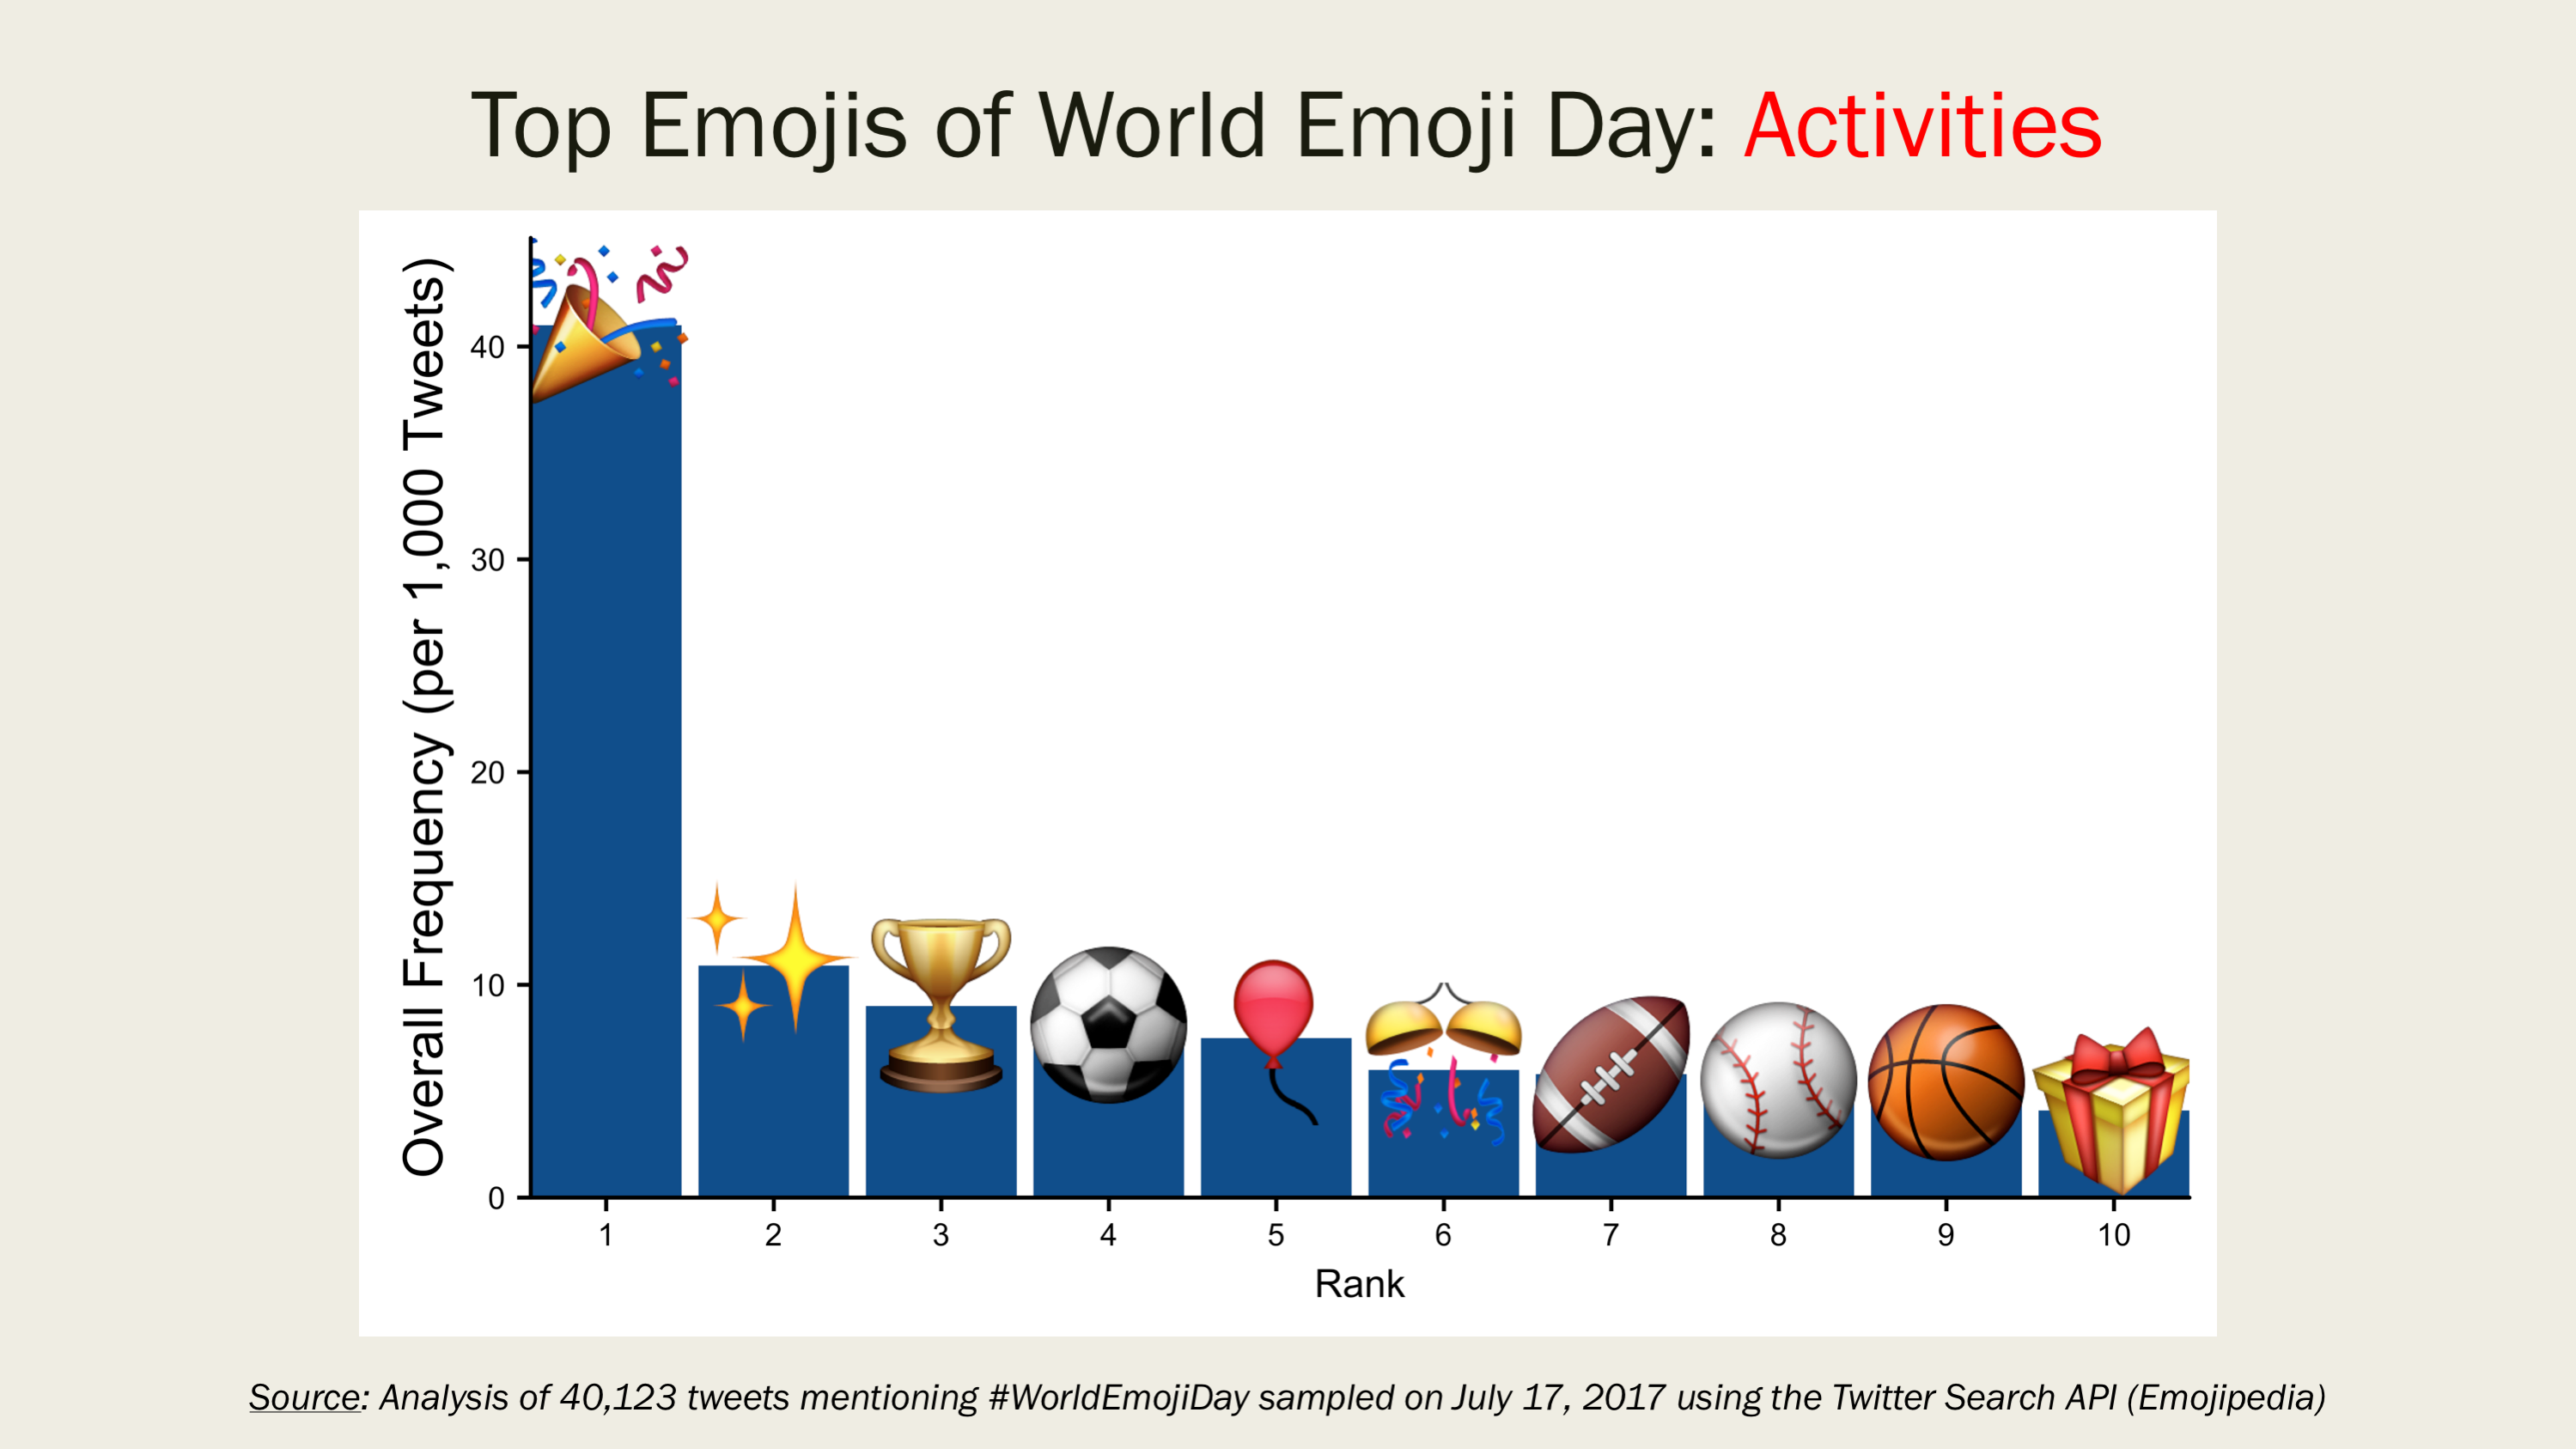 Top Emojis Of World Emoji Day - Emojis created real life still dont make sense